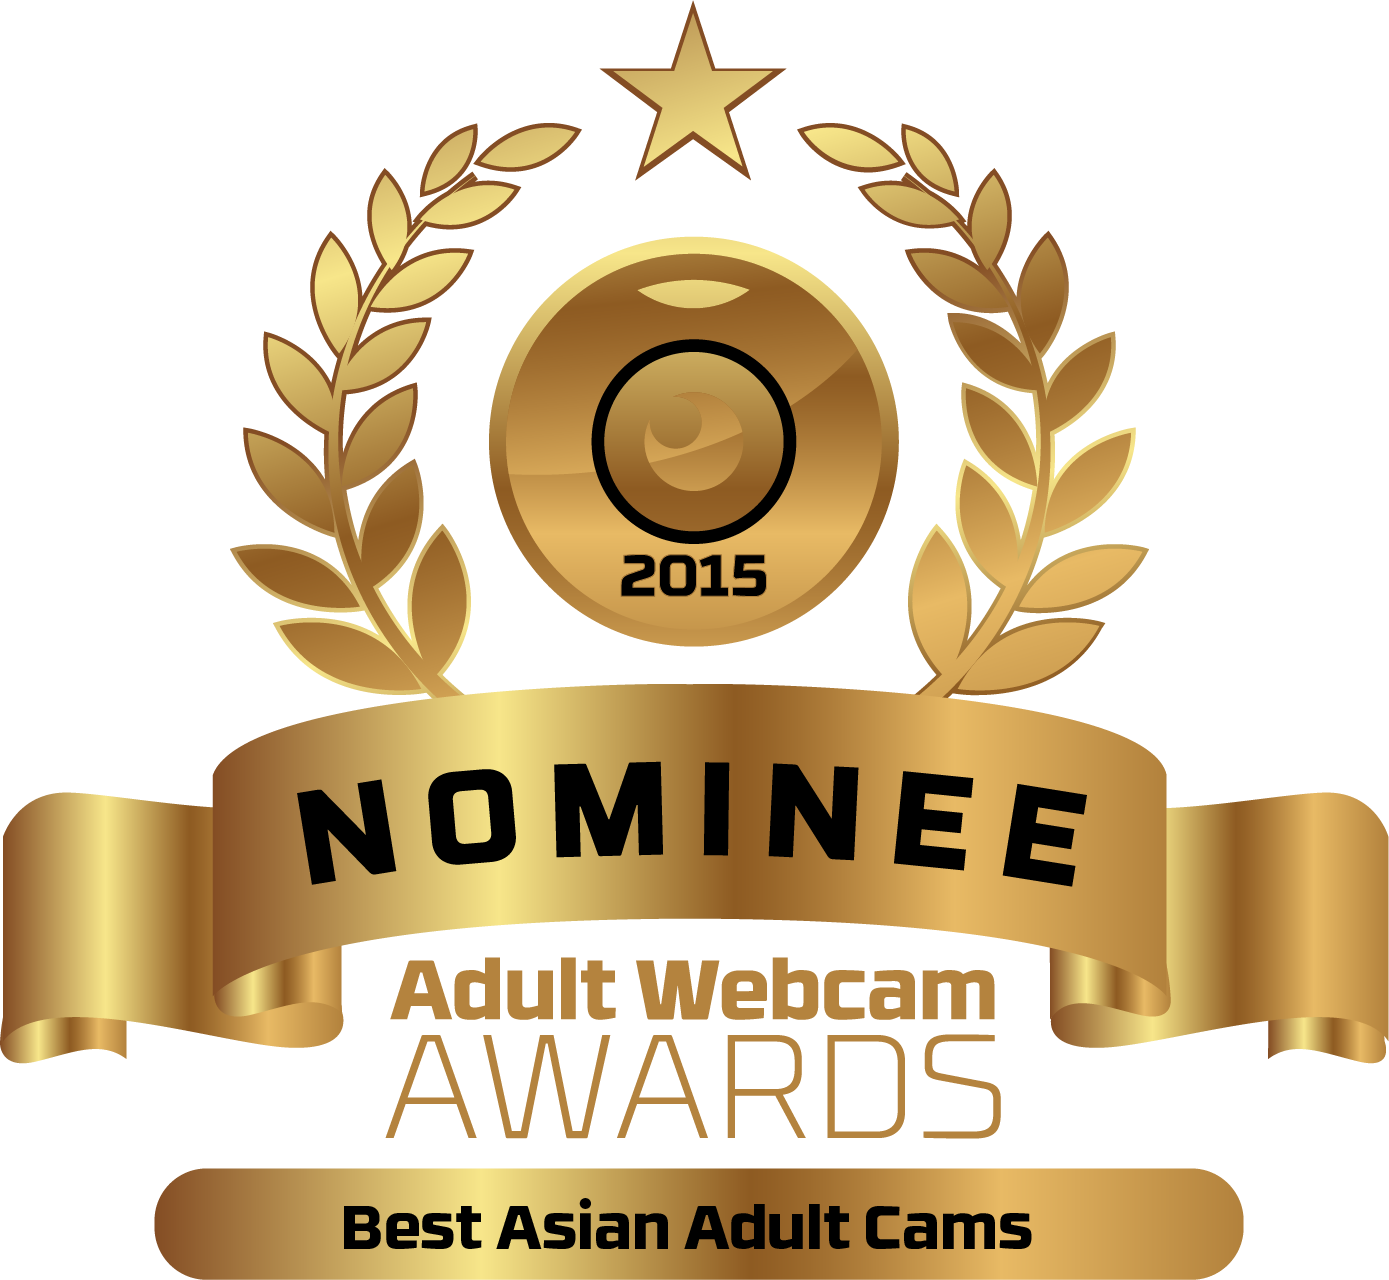 Best Asian Adult Webcam Site Nominee